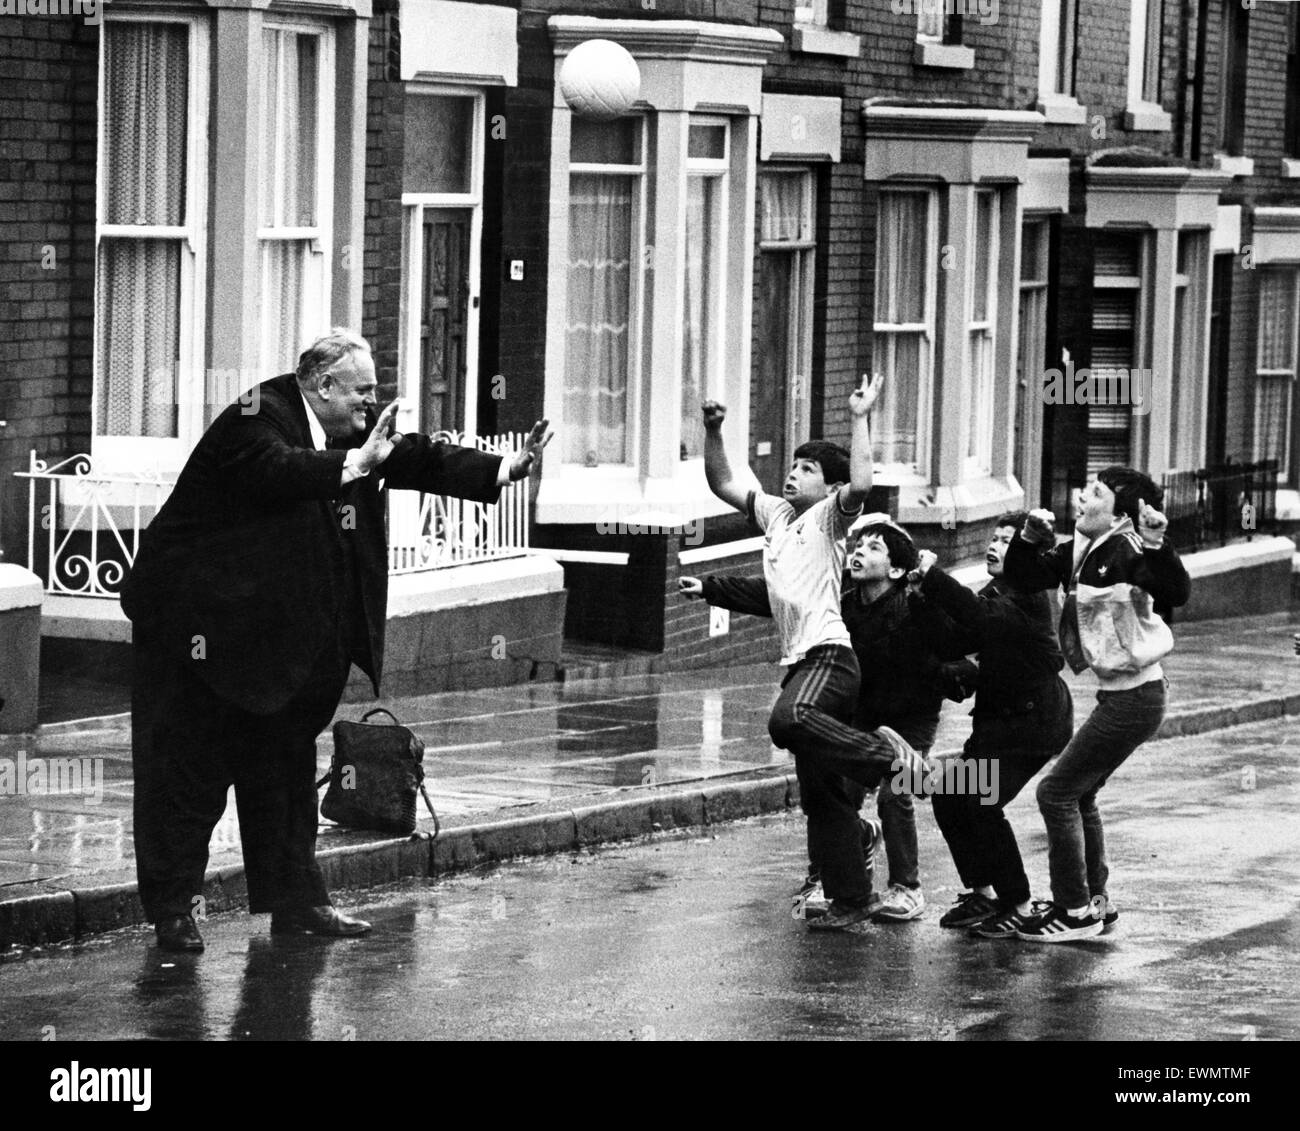 Cyril Smith, Liberal Member of Parliament for Rochdale playing football with a group of young boys in a street. - Stock Image